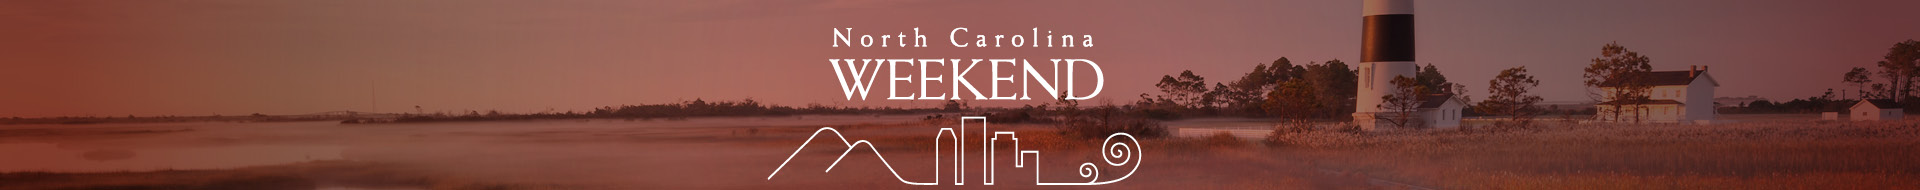 North Carolina Weekend